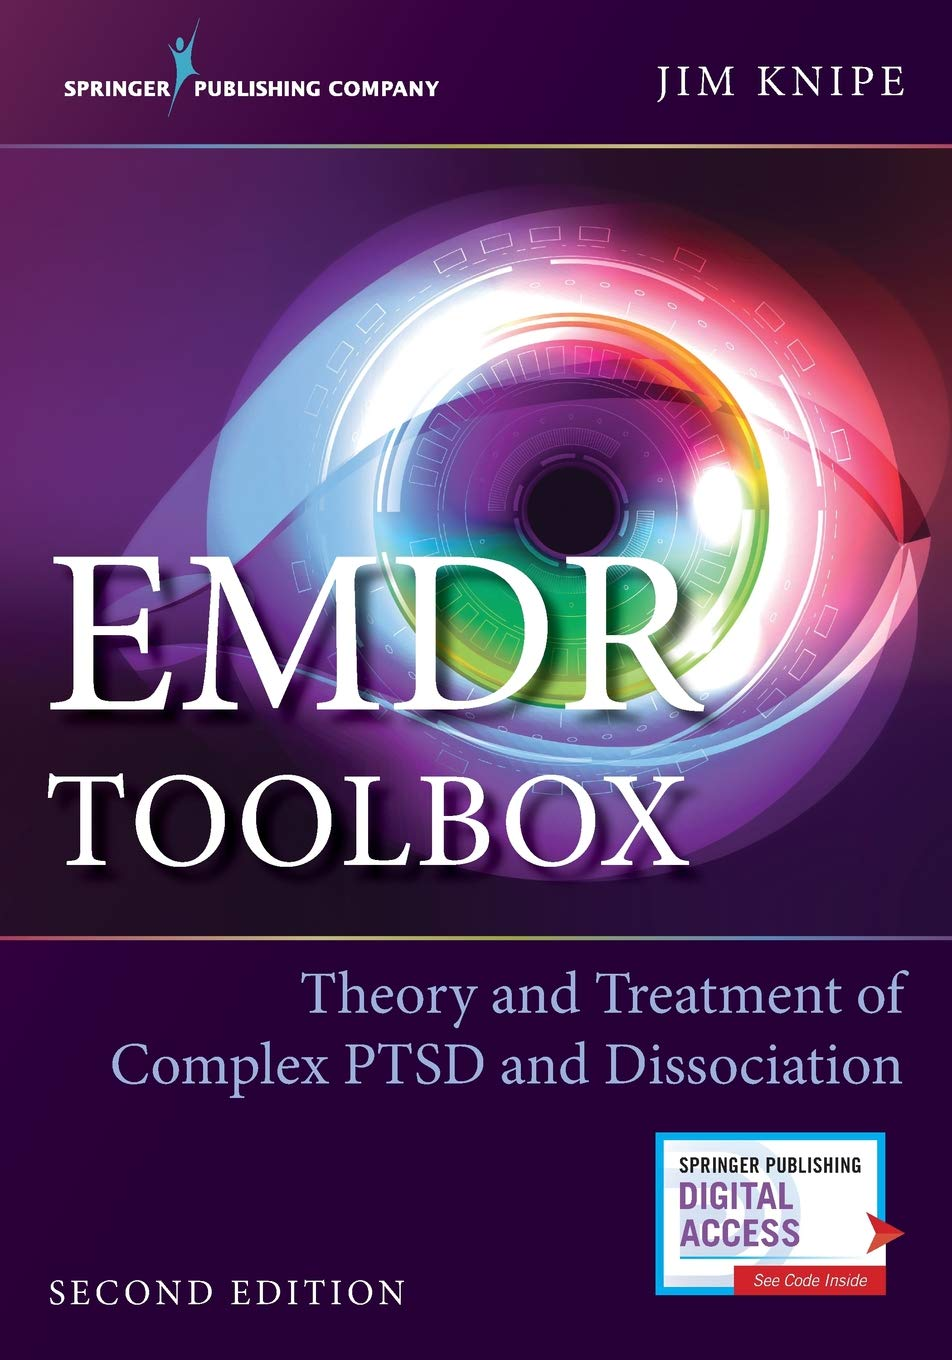 500fe19d60a EMDR Toolbox  Theory and Treatment of Complex PTSD and Dissociation ...